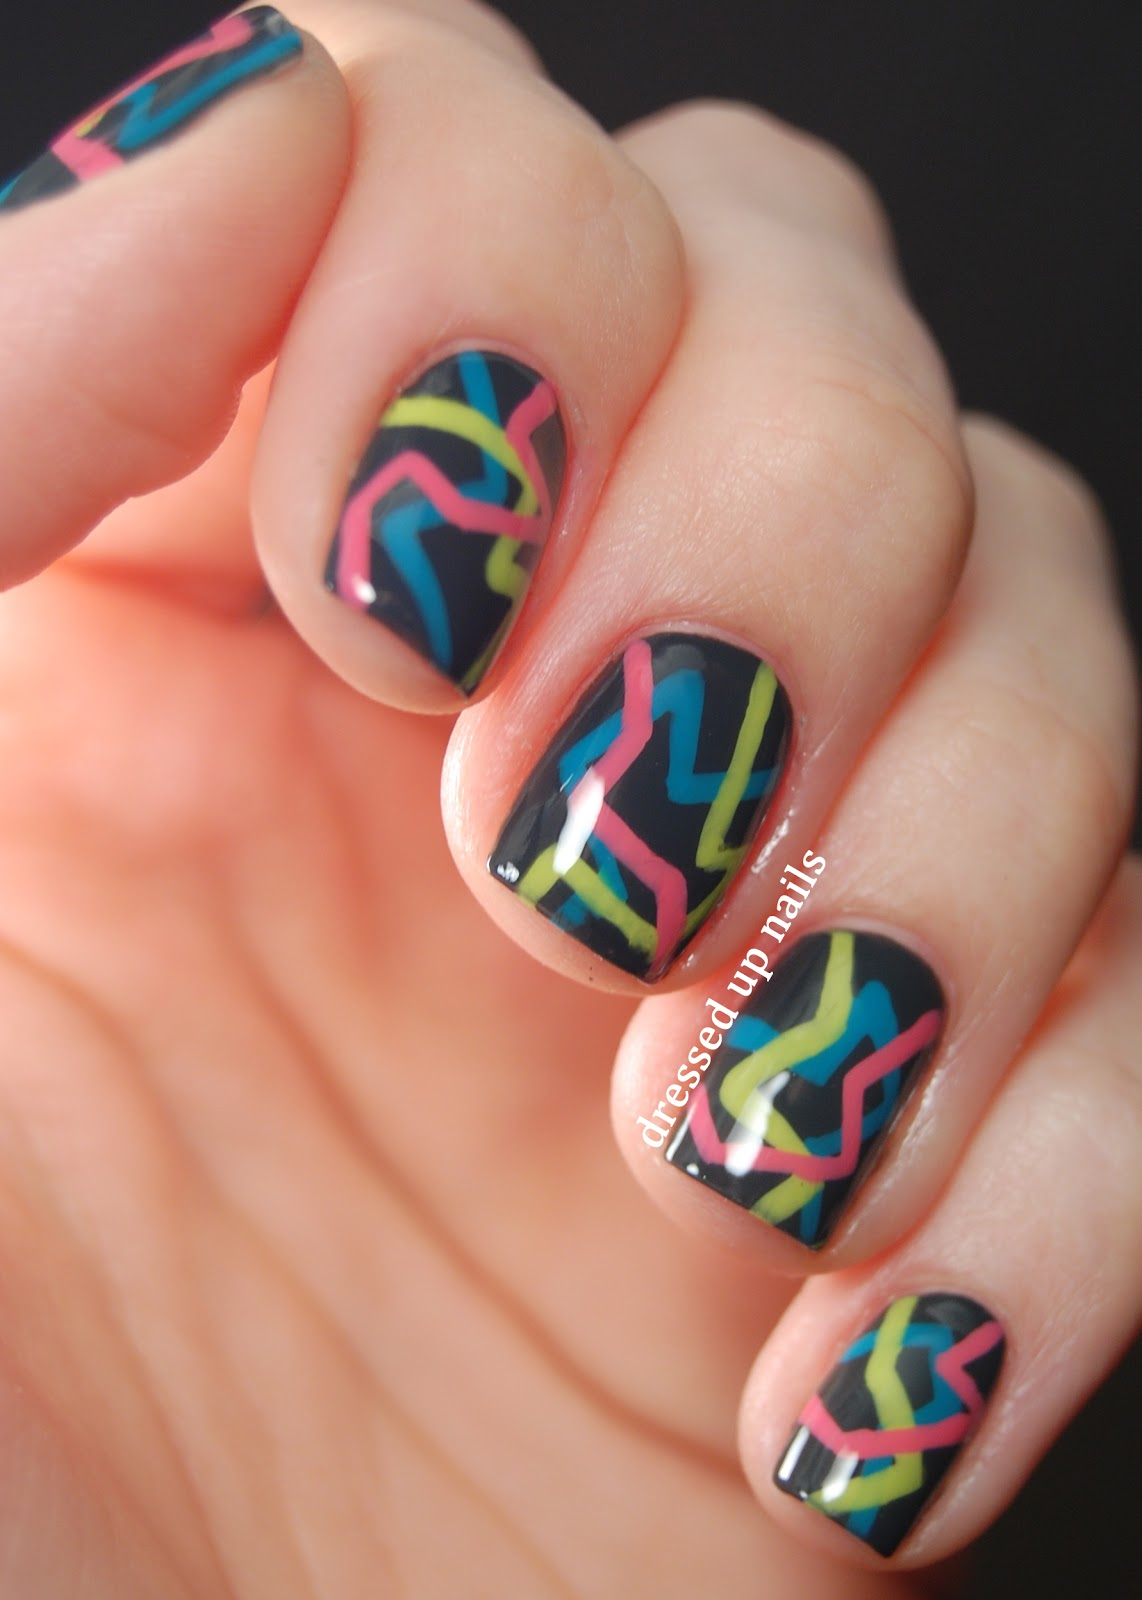 19 cool easy nail designs images home interior cool and for Cool art design ideas